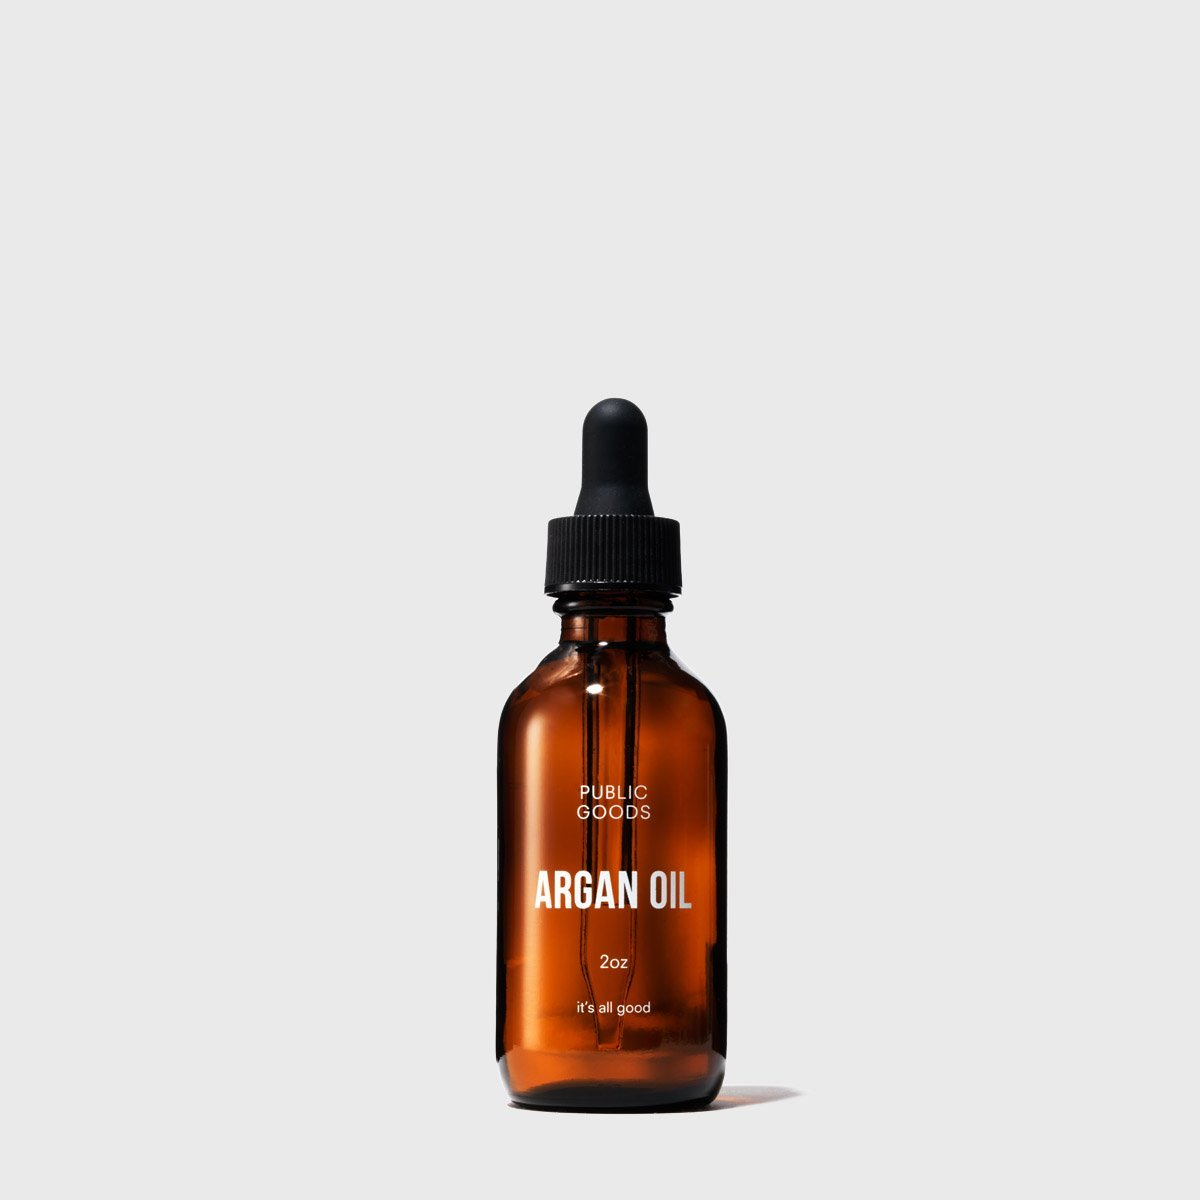 two ounce bottle of public goods argan oil